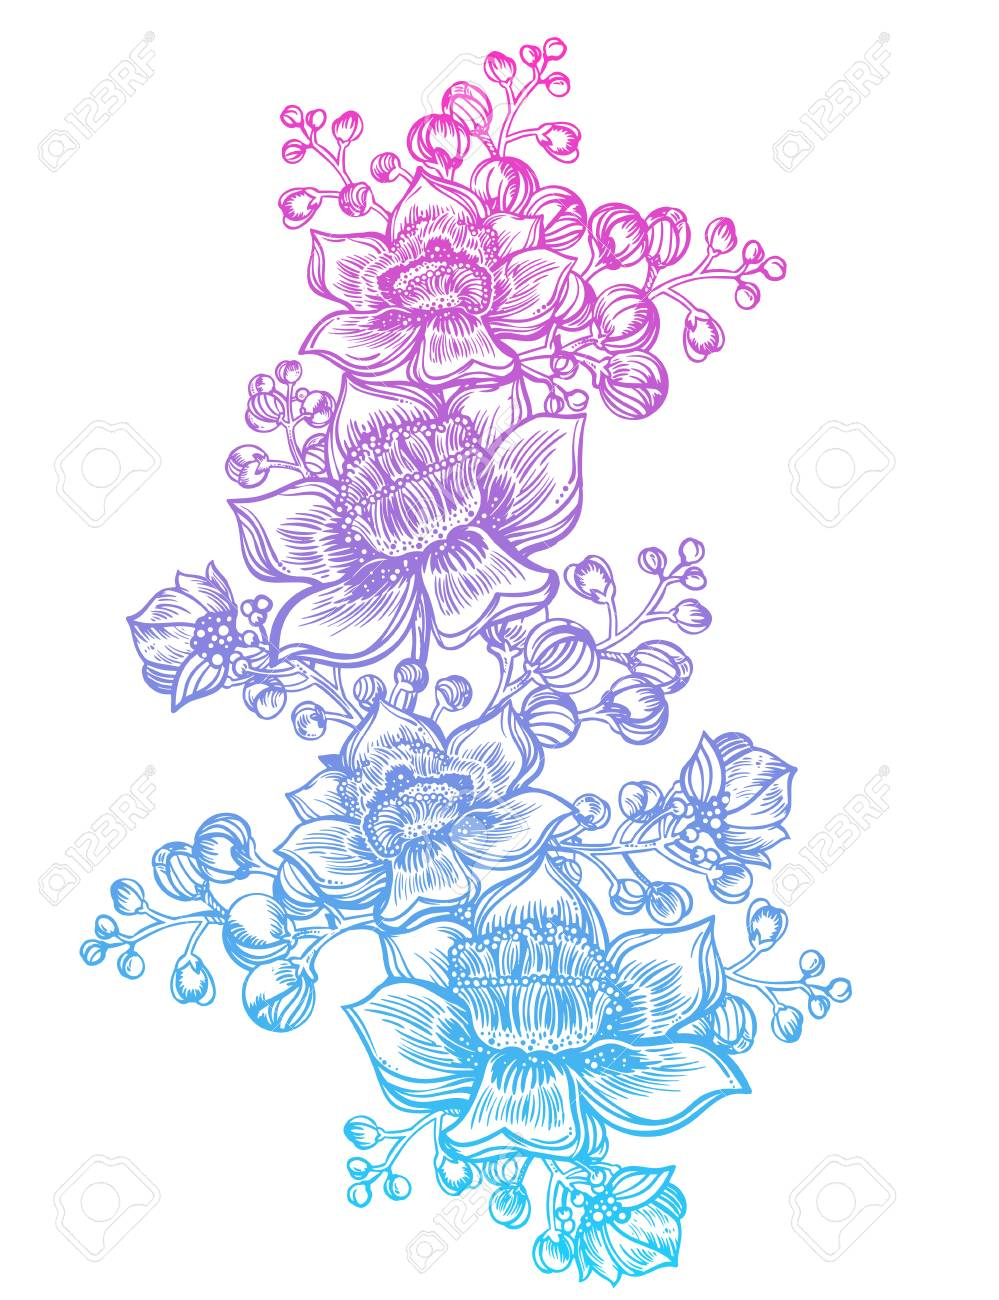 Exotic tropical flowers wild summer flowers stem bouquet sketch in line art style